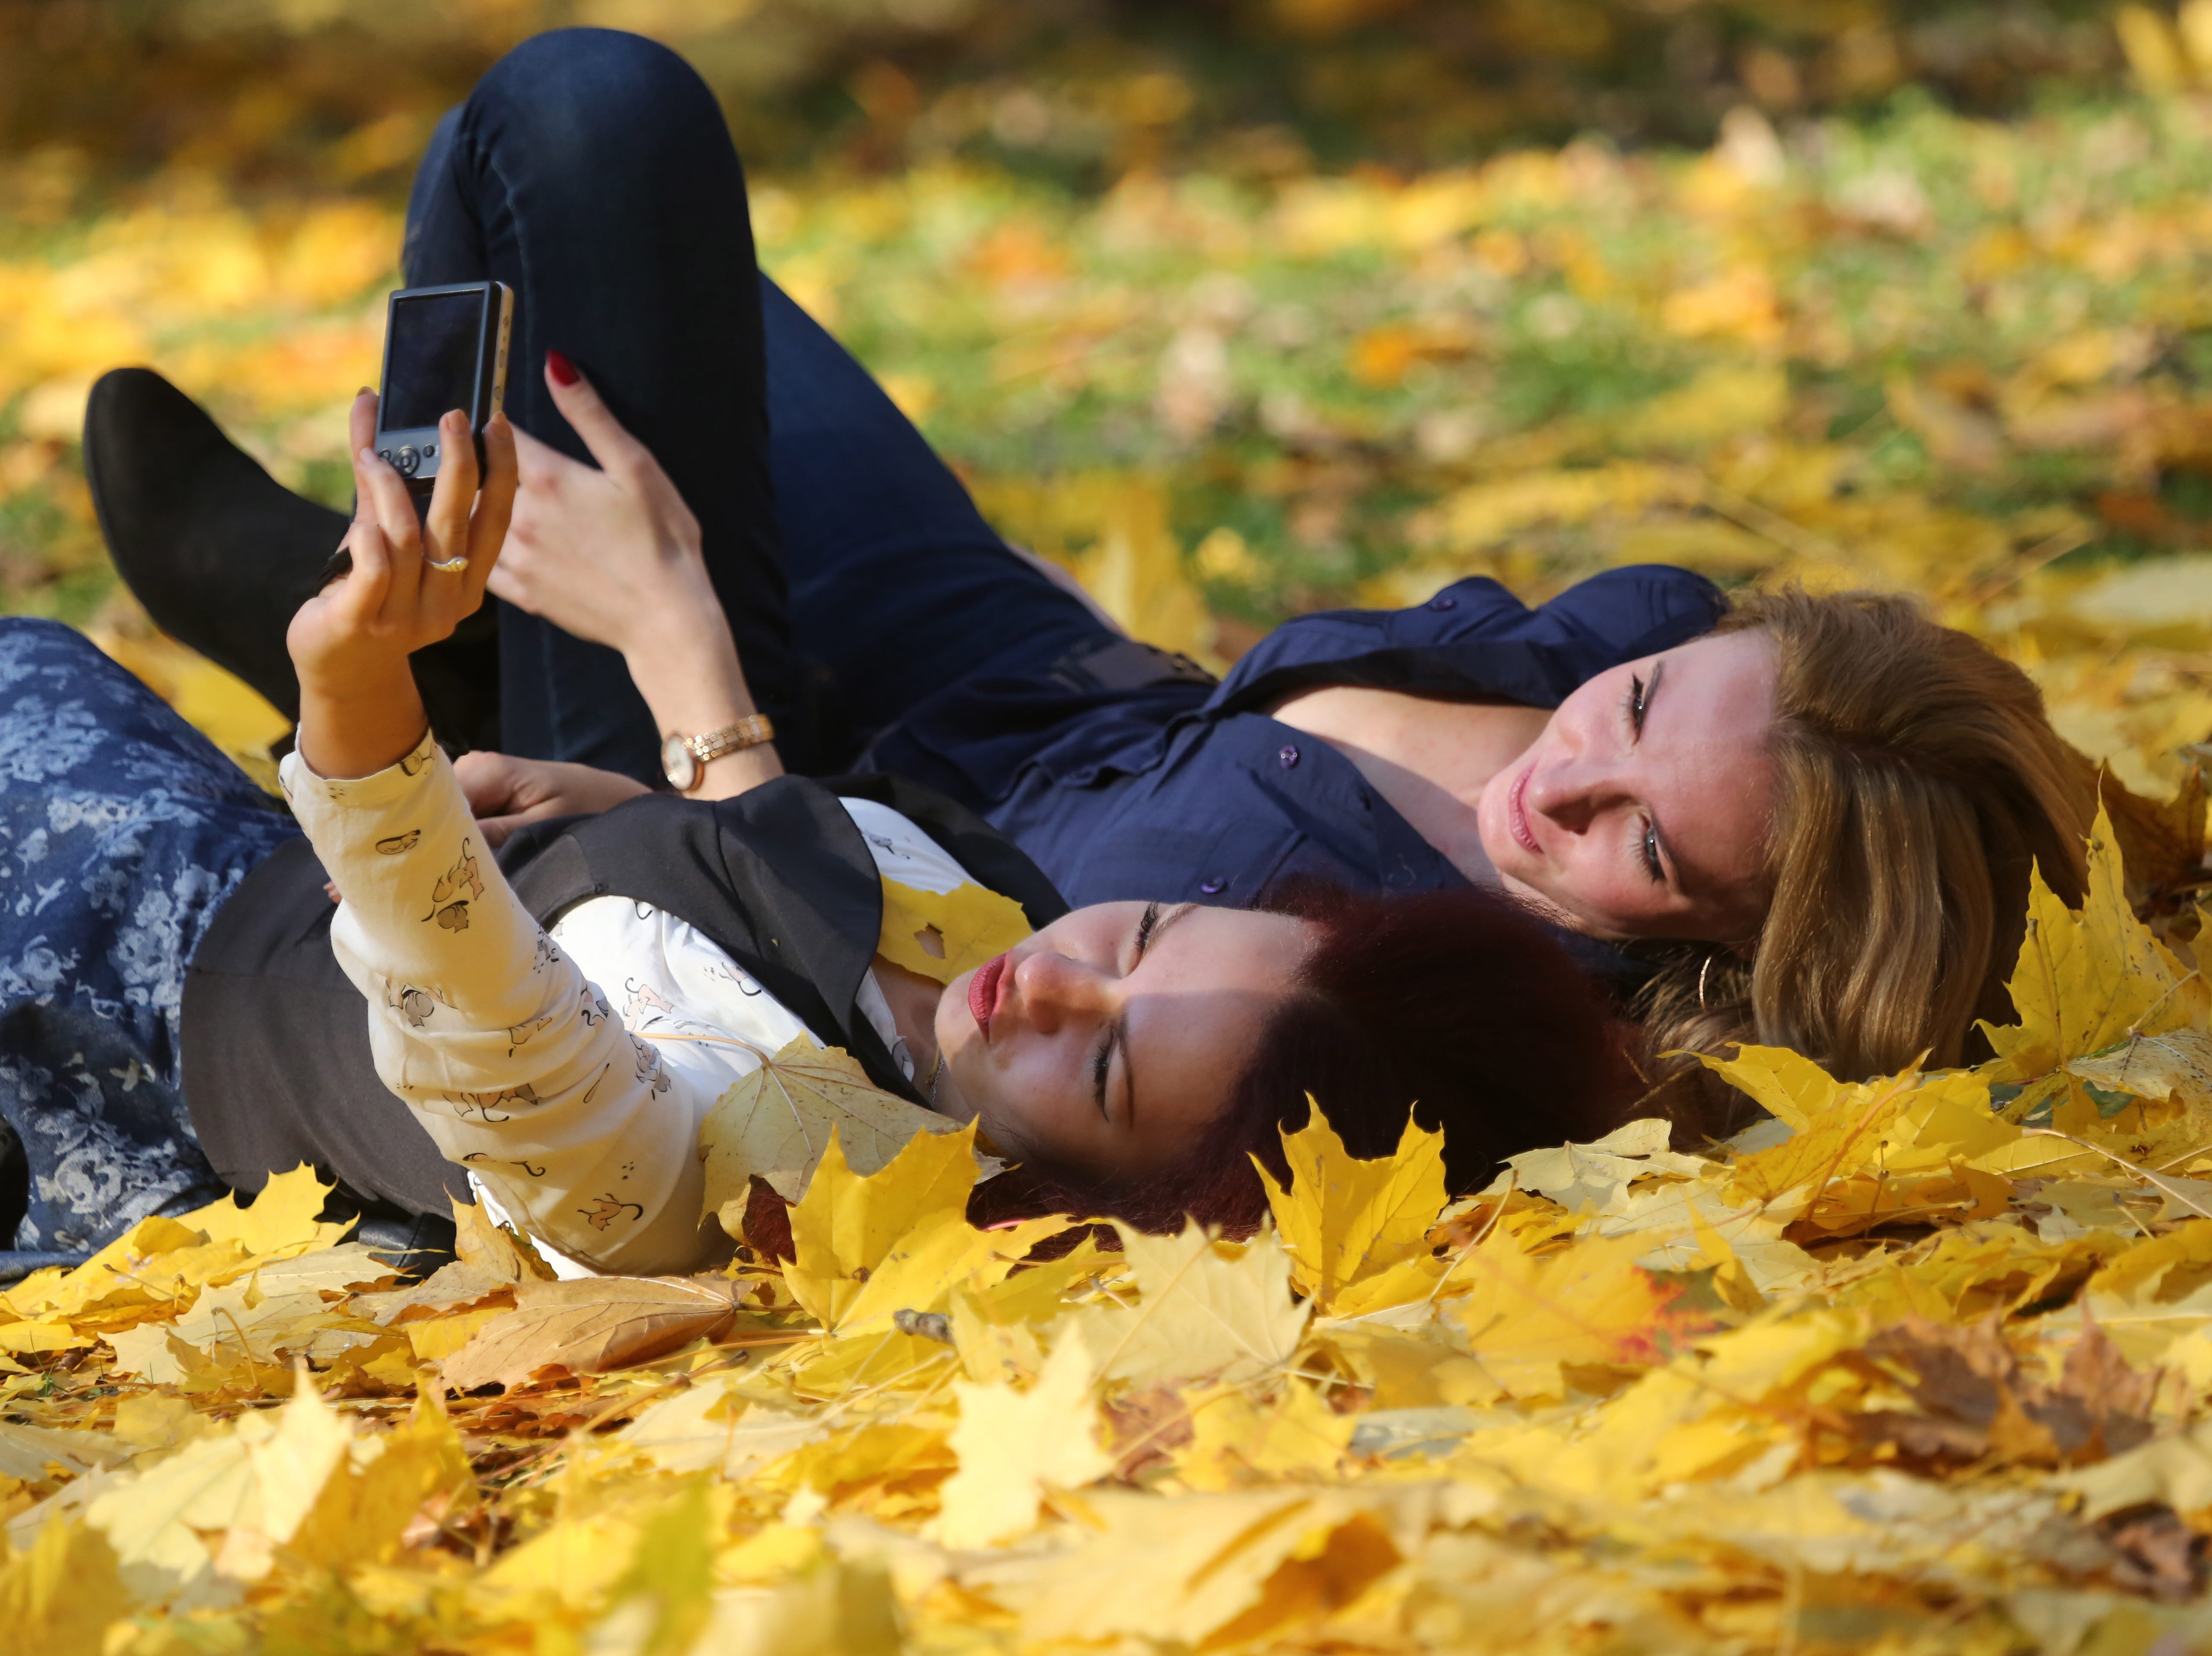 Young women take pictures on seasonal leaves in a central park on a sunny day in Minsk, Belarus on Oct. 18, 2017.